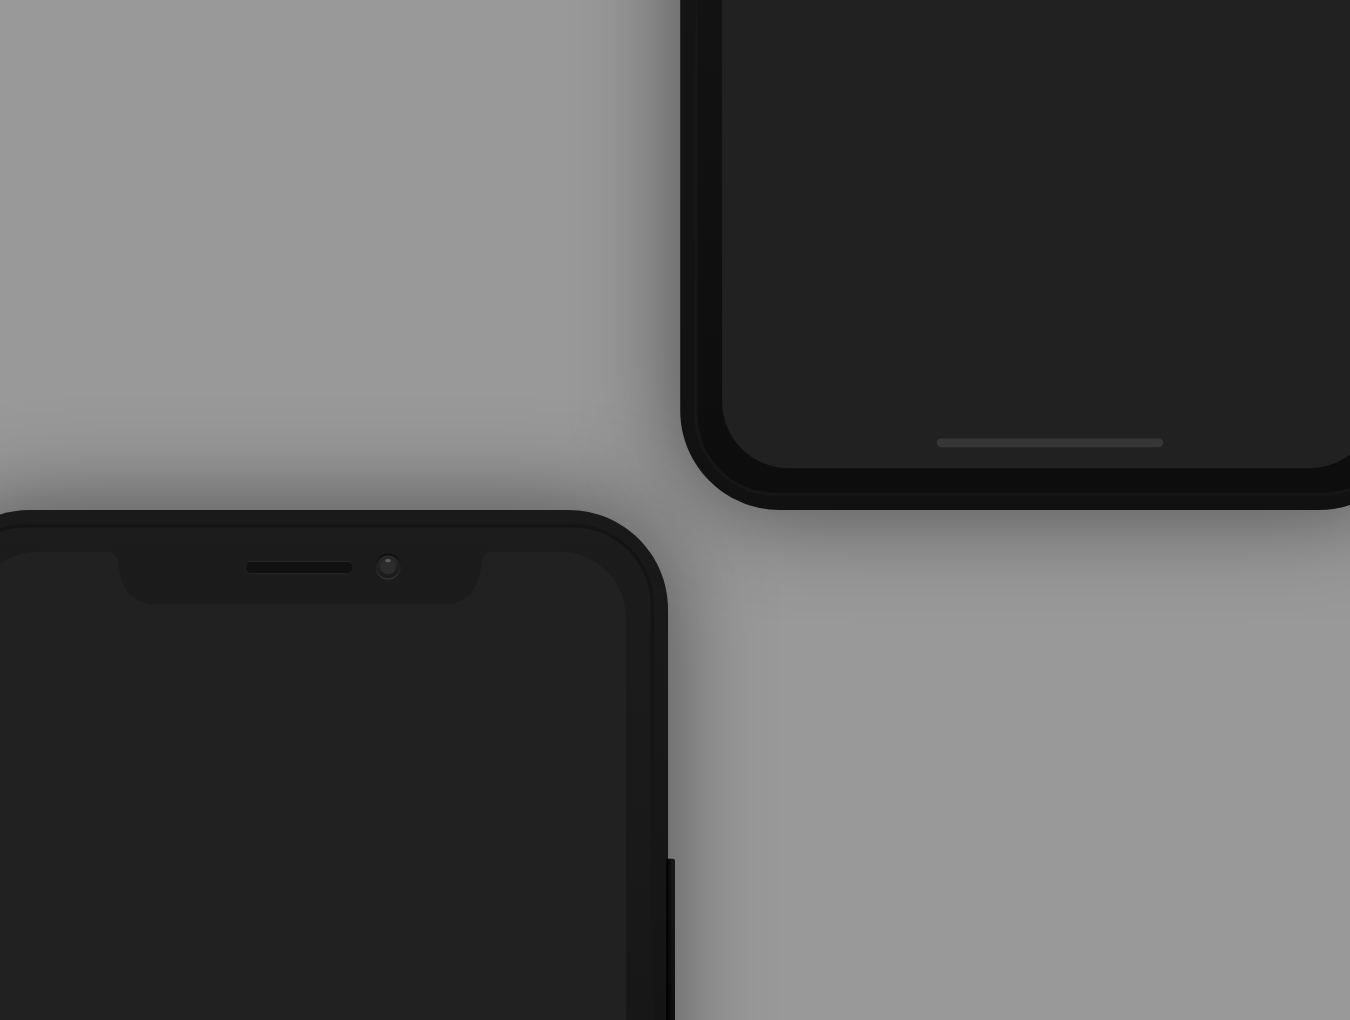 iPhone X Mockups for XD - Freebie - UpLabs